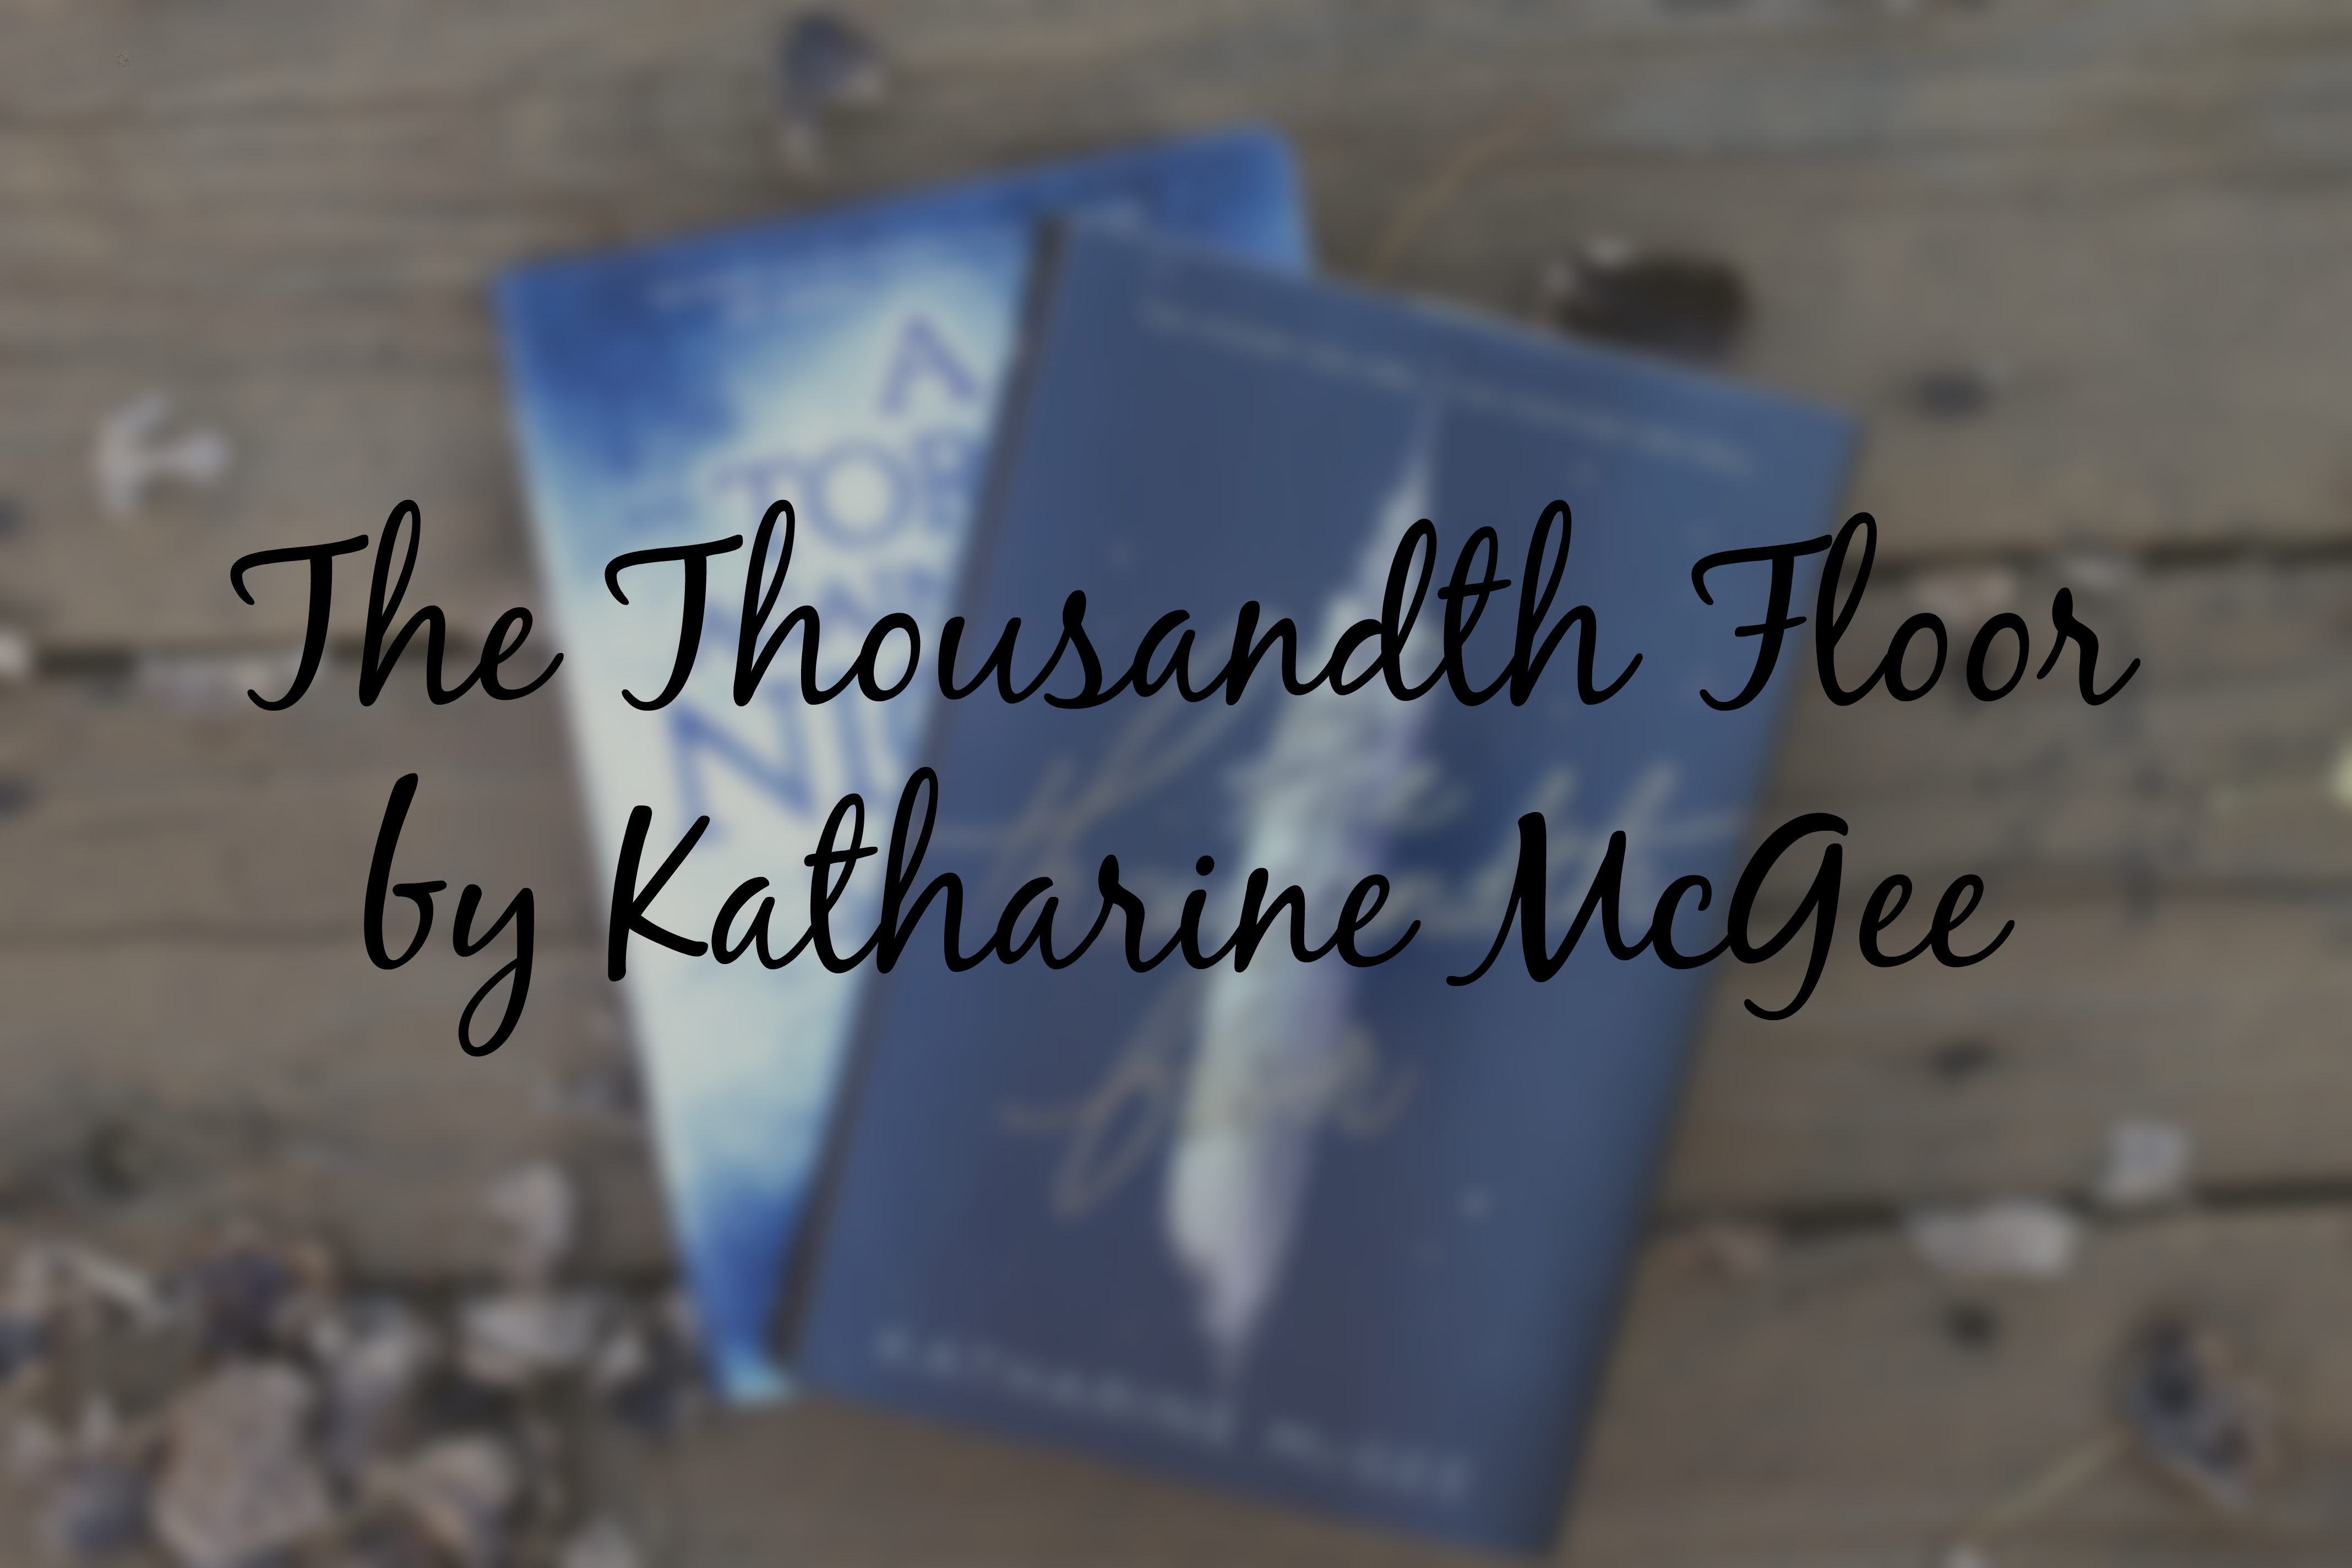 The Thousandth Floor A Very Messed Up Book Glittering